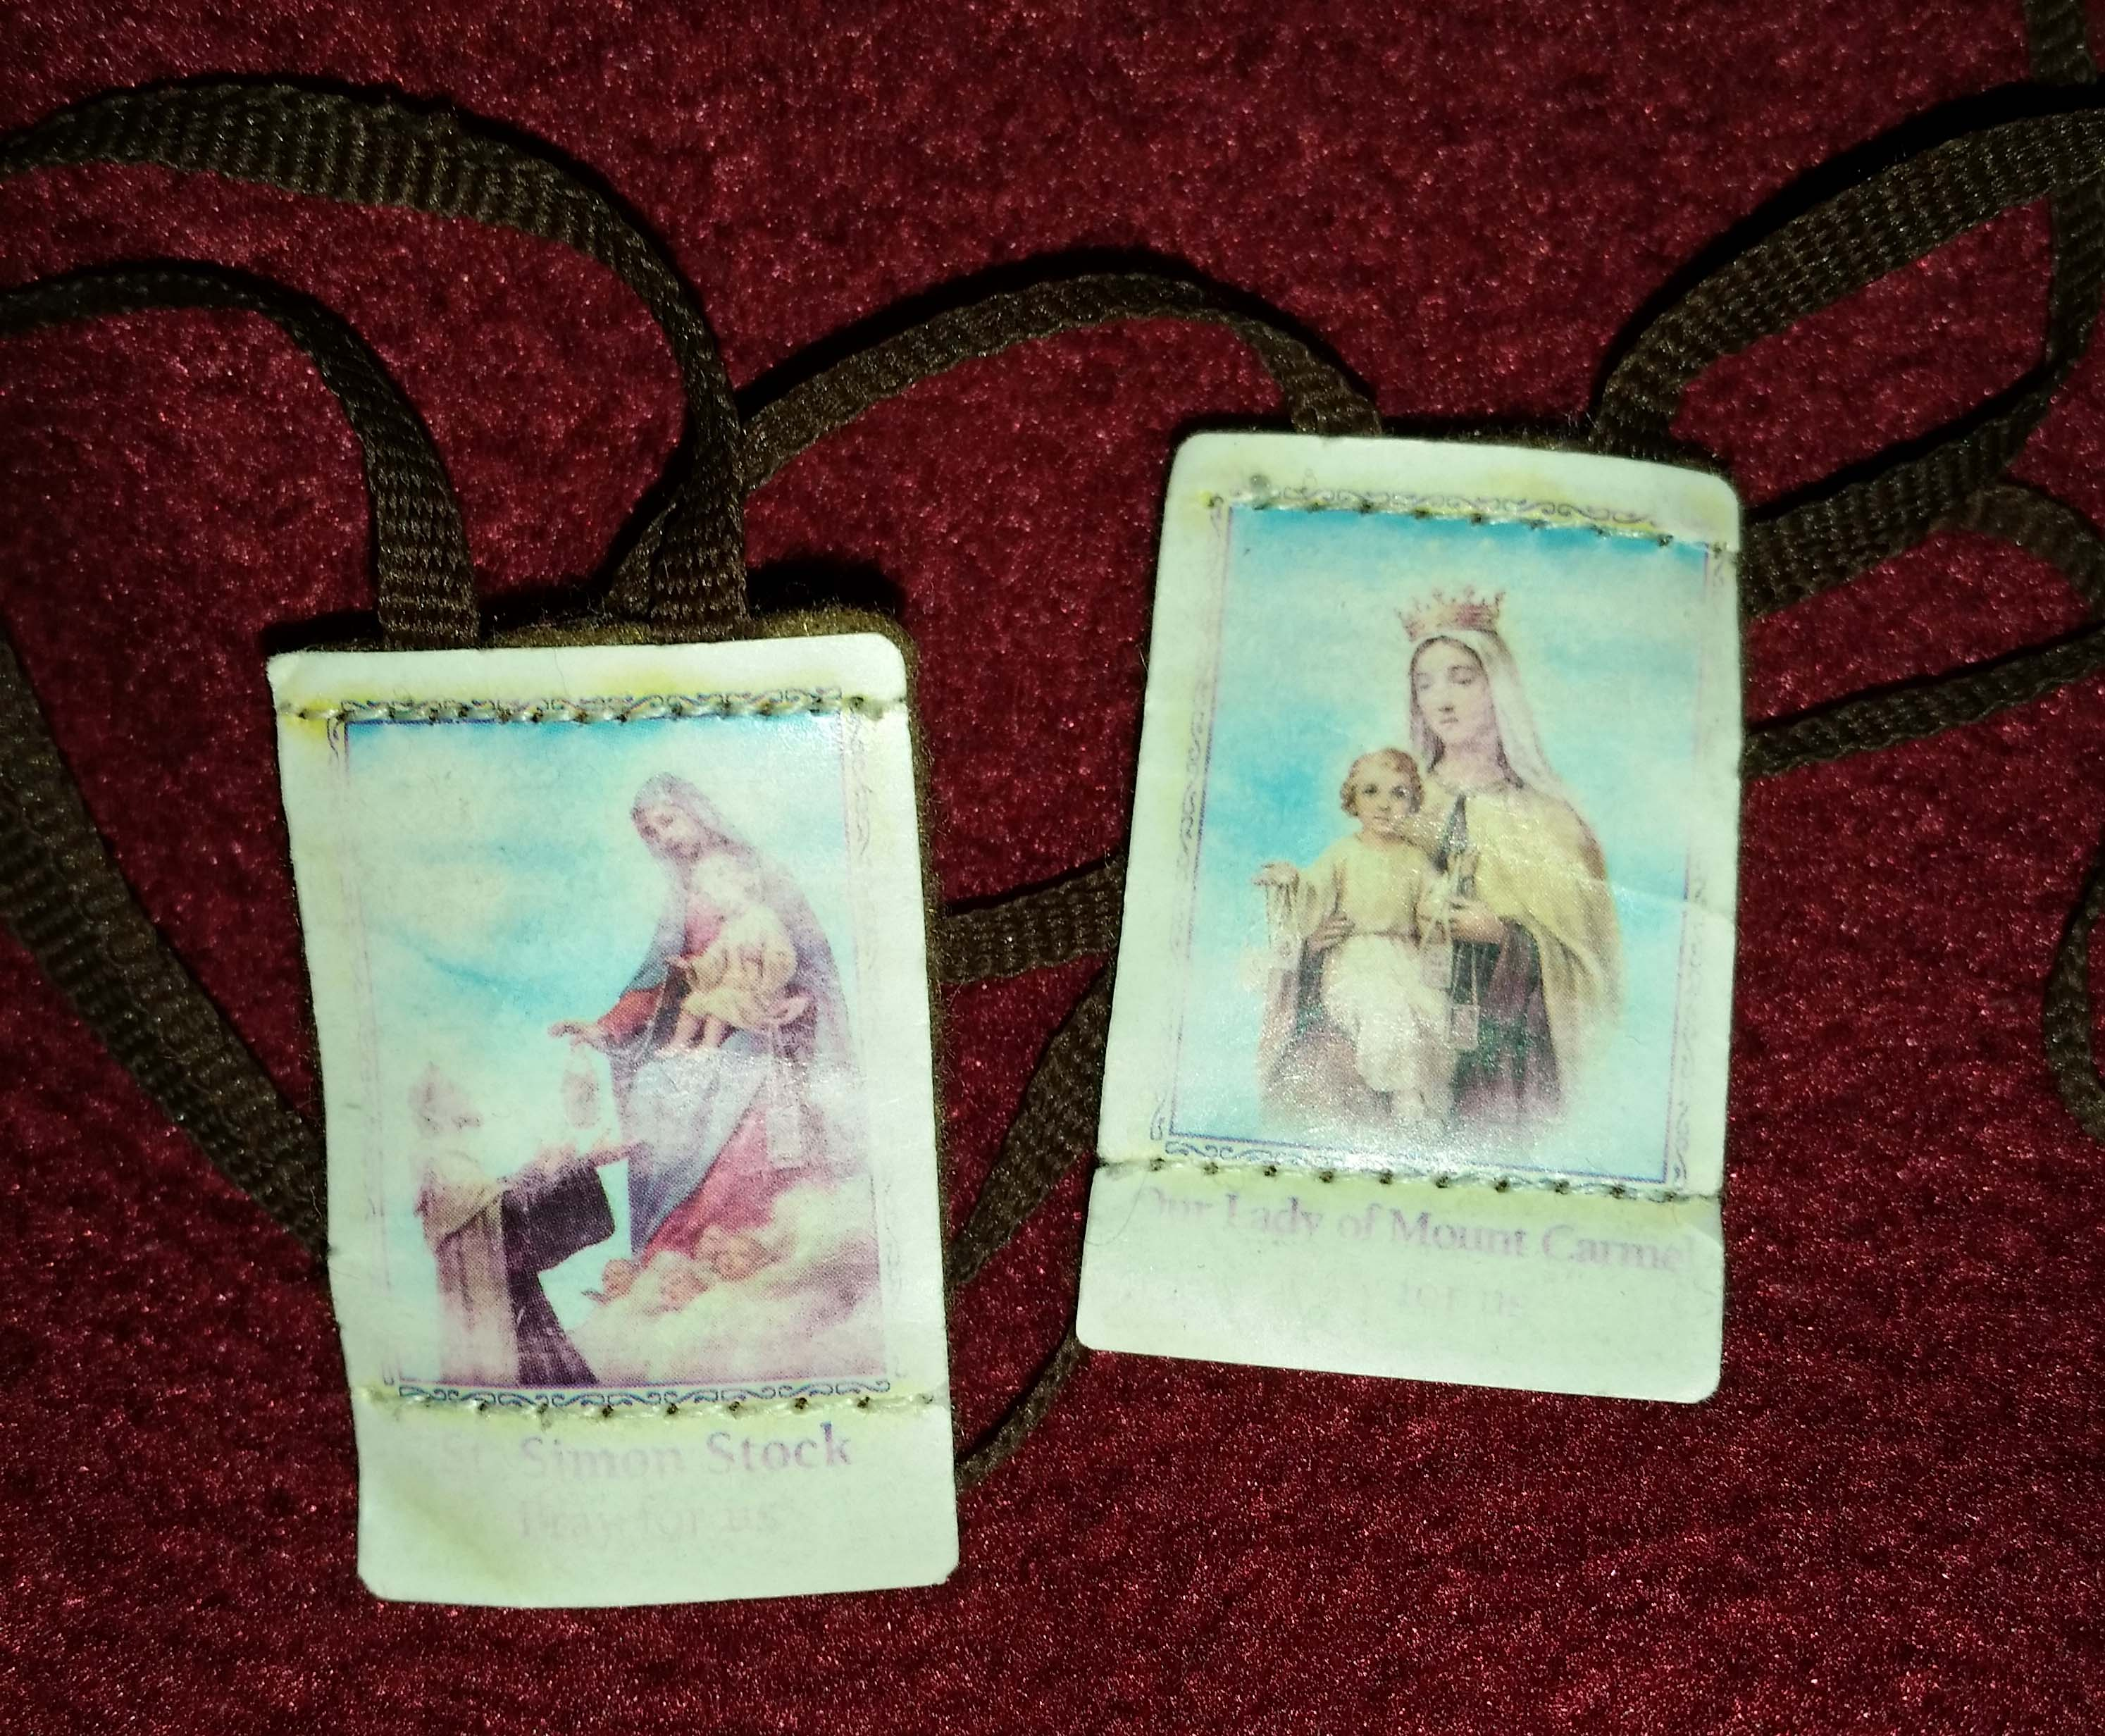 What is the scapular